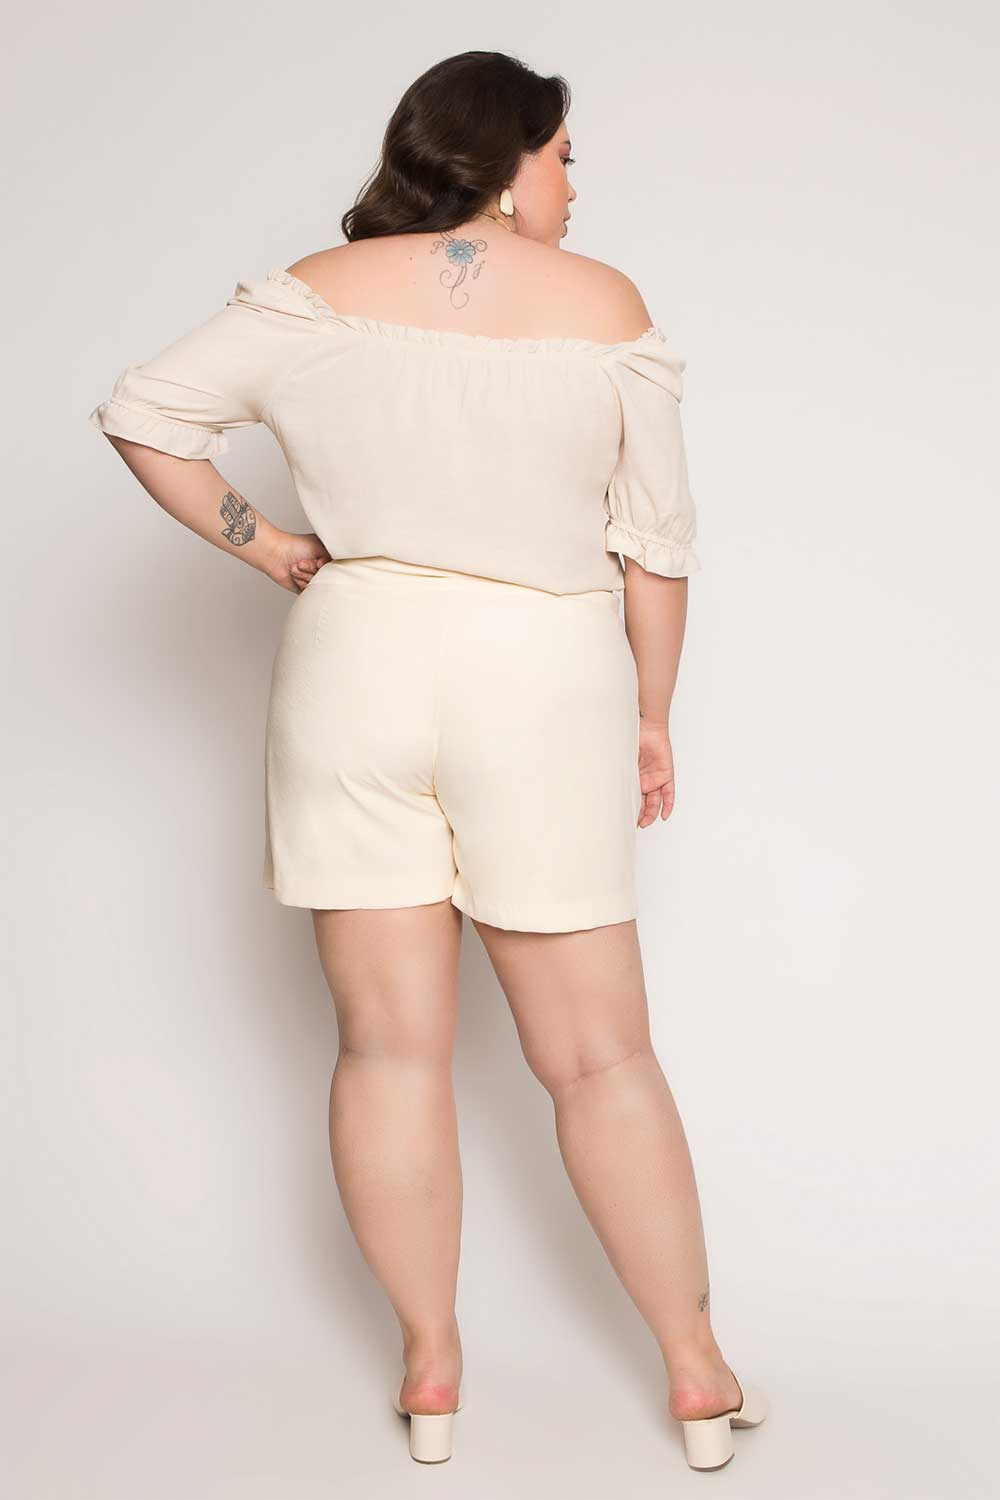 0058_Shorts_Plus_Size_Liso_OffWhite_5